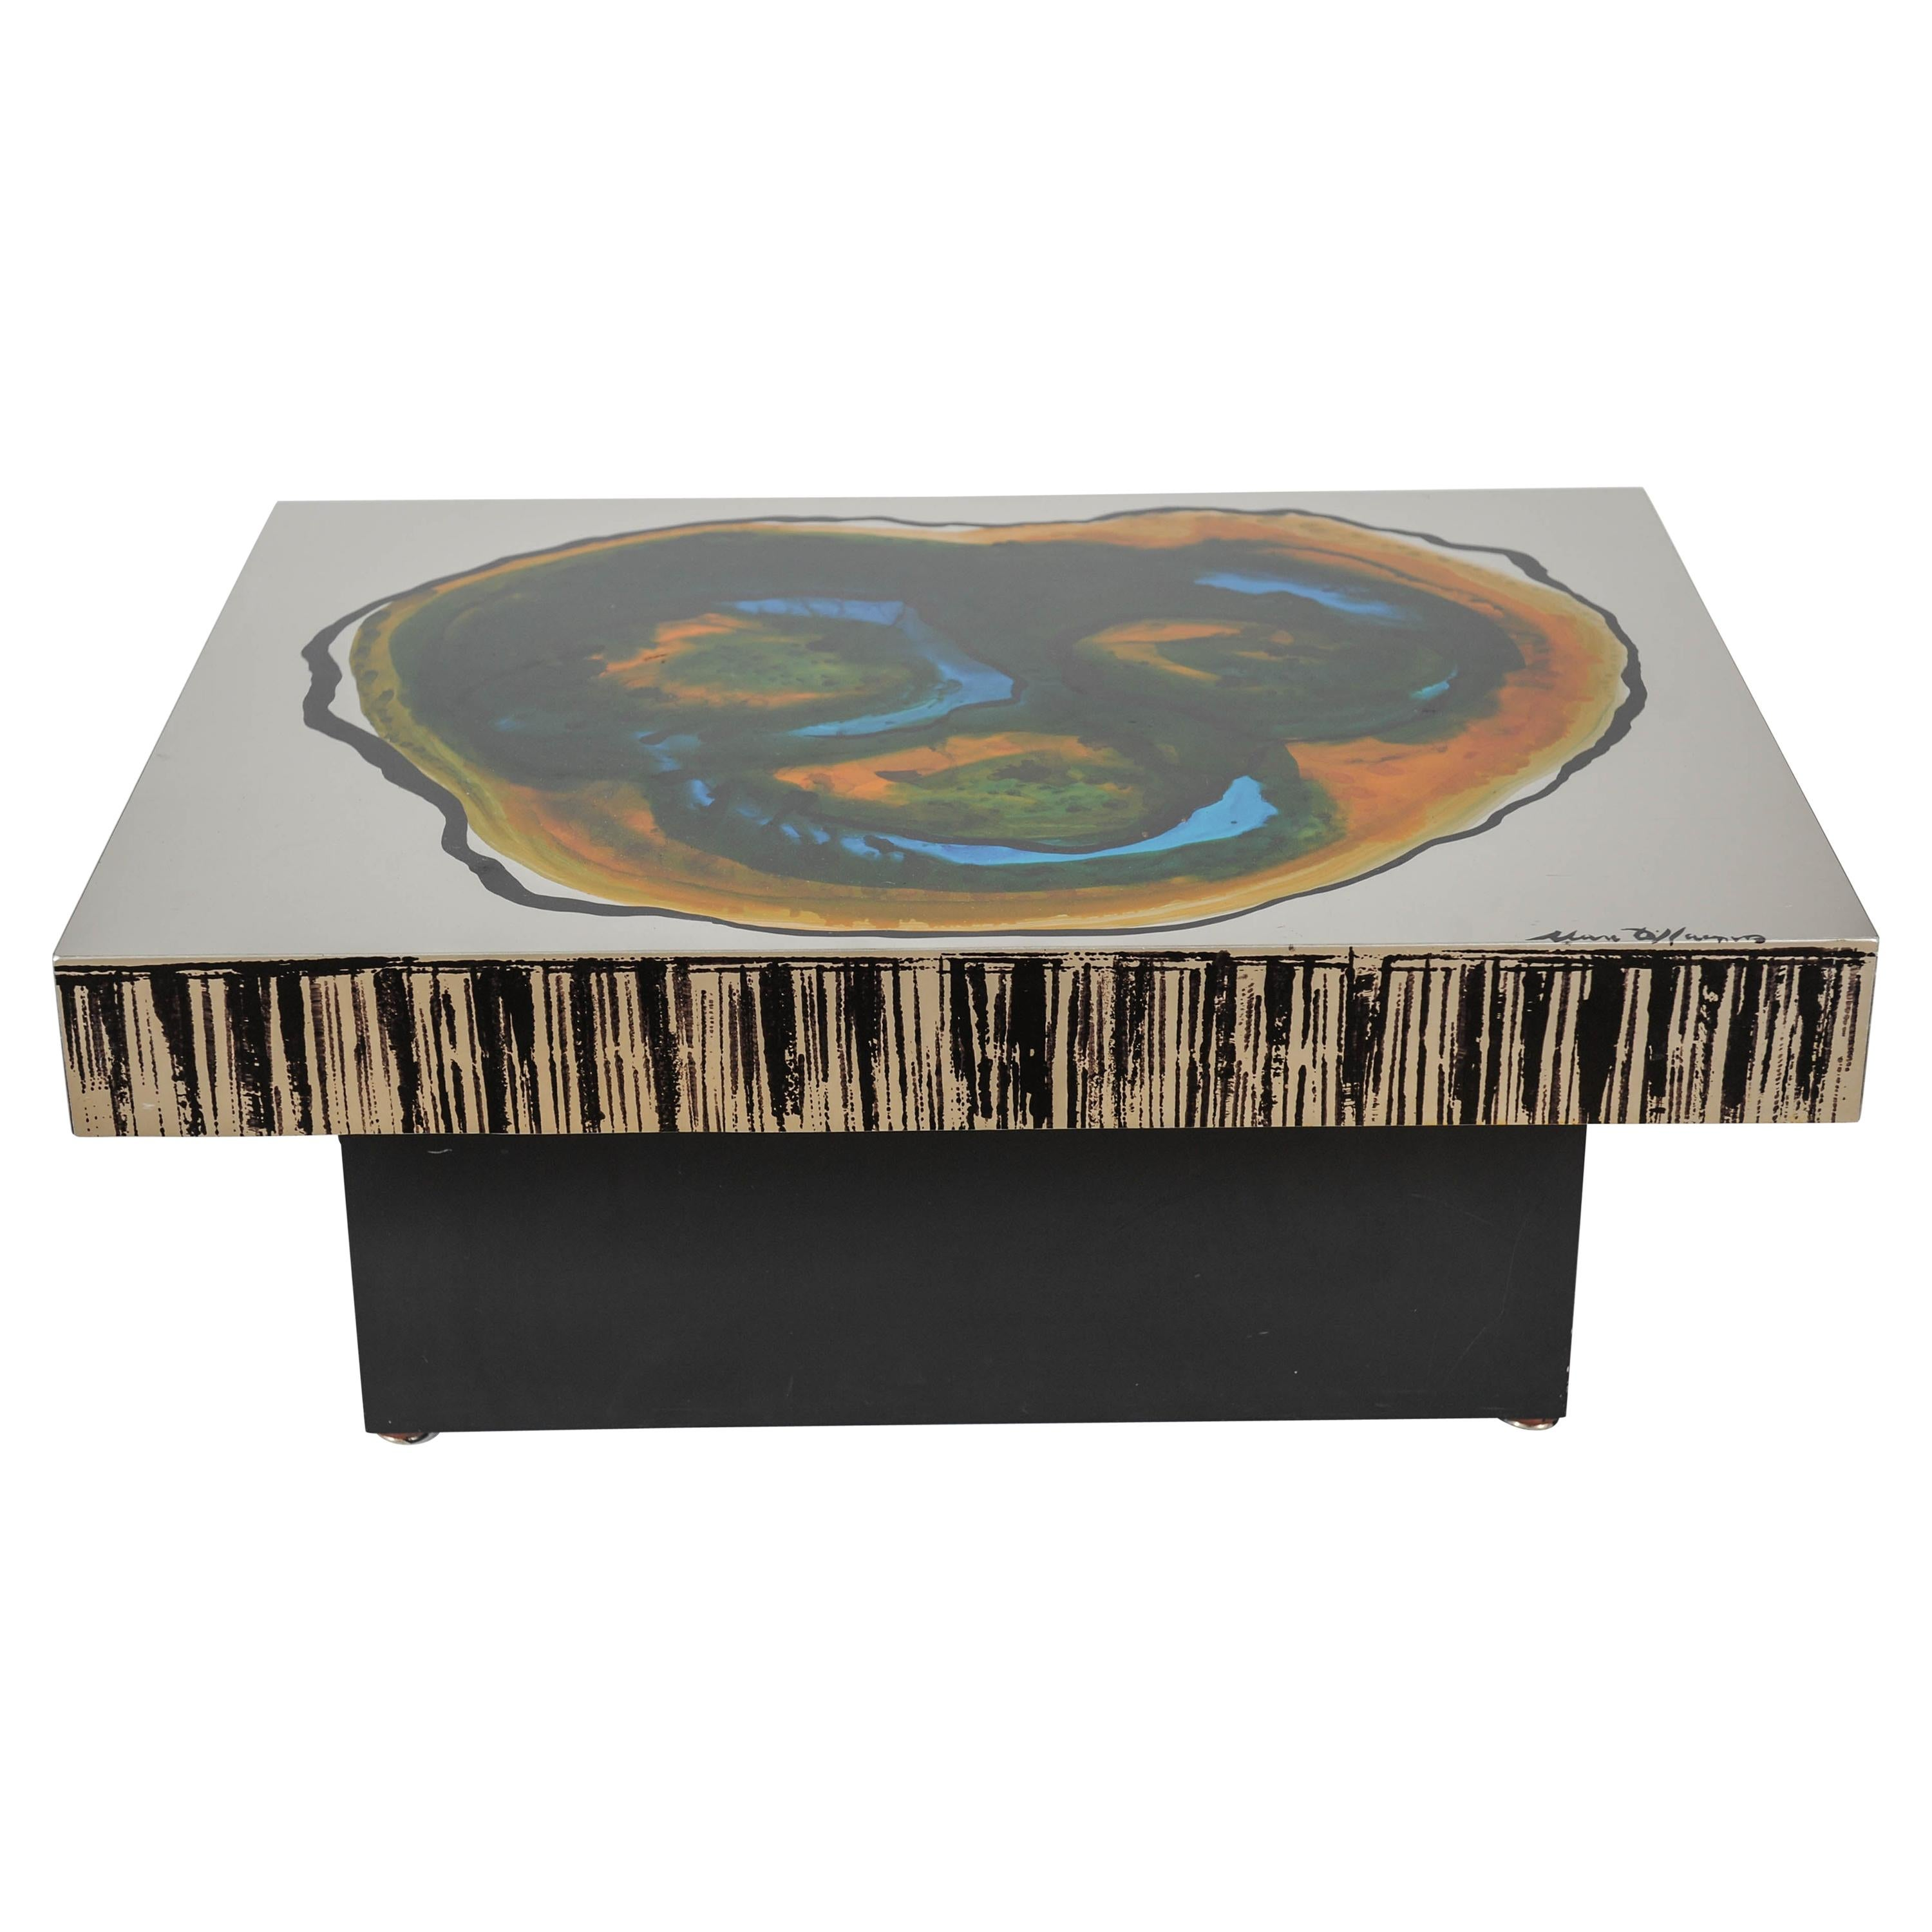 Coffee Table Designed and Made by Marc d'Haenens